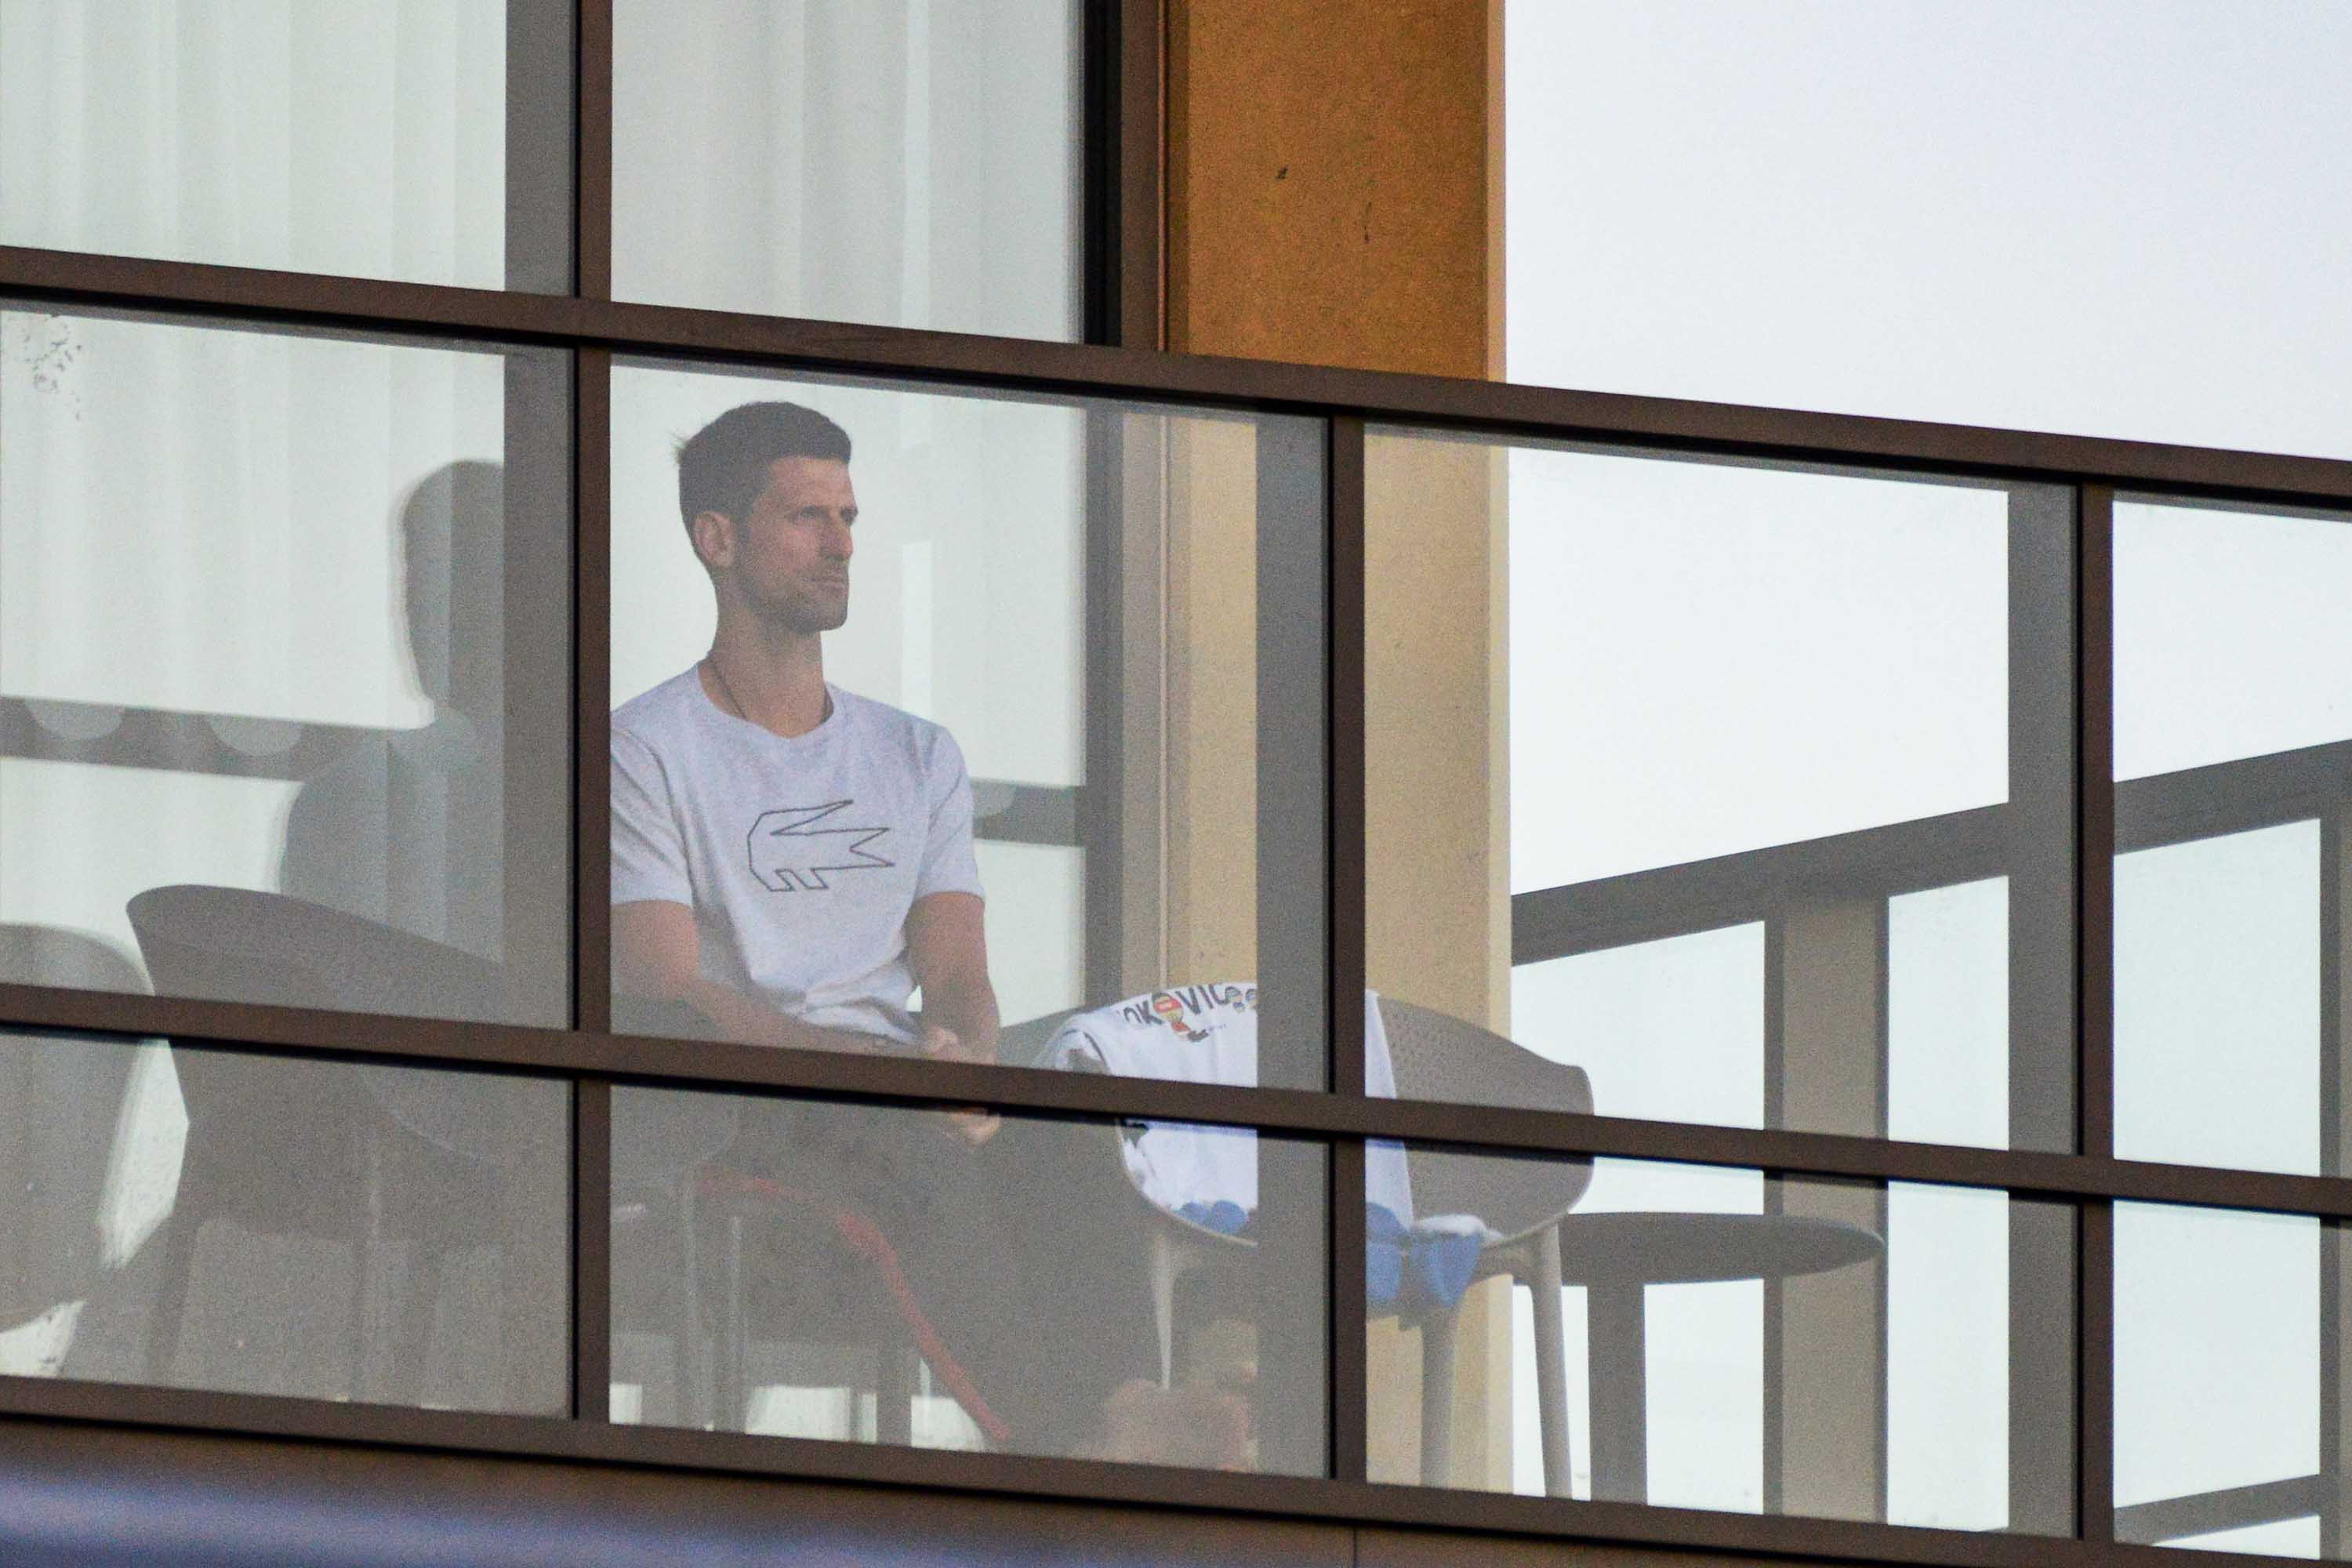 Novak Djokovic sits on his hotel balcony on January 18 in Adelaide, Australia, where players have quarantined for two weeks upon their arrival ahead of the Australian Open tournament in Melbourne.